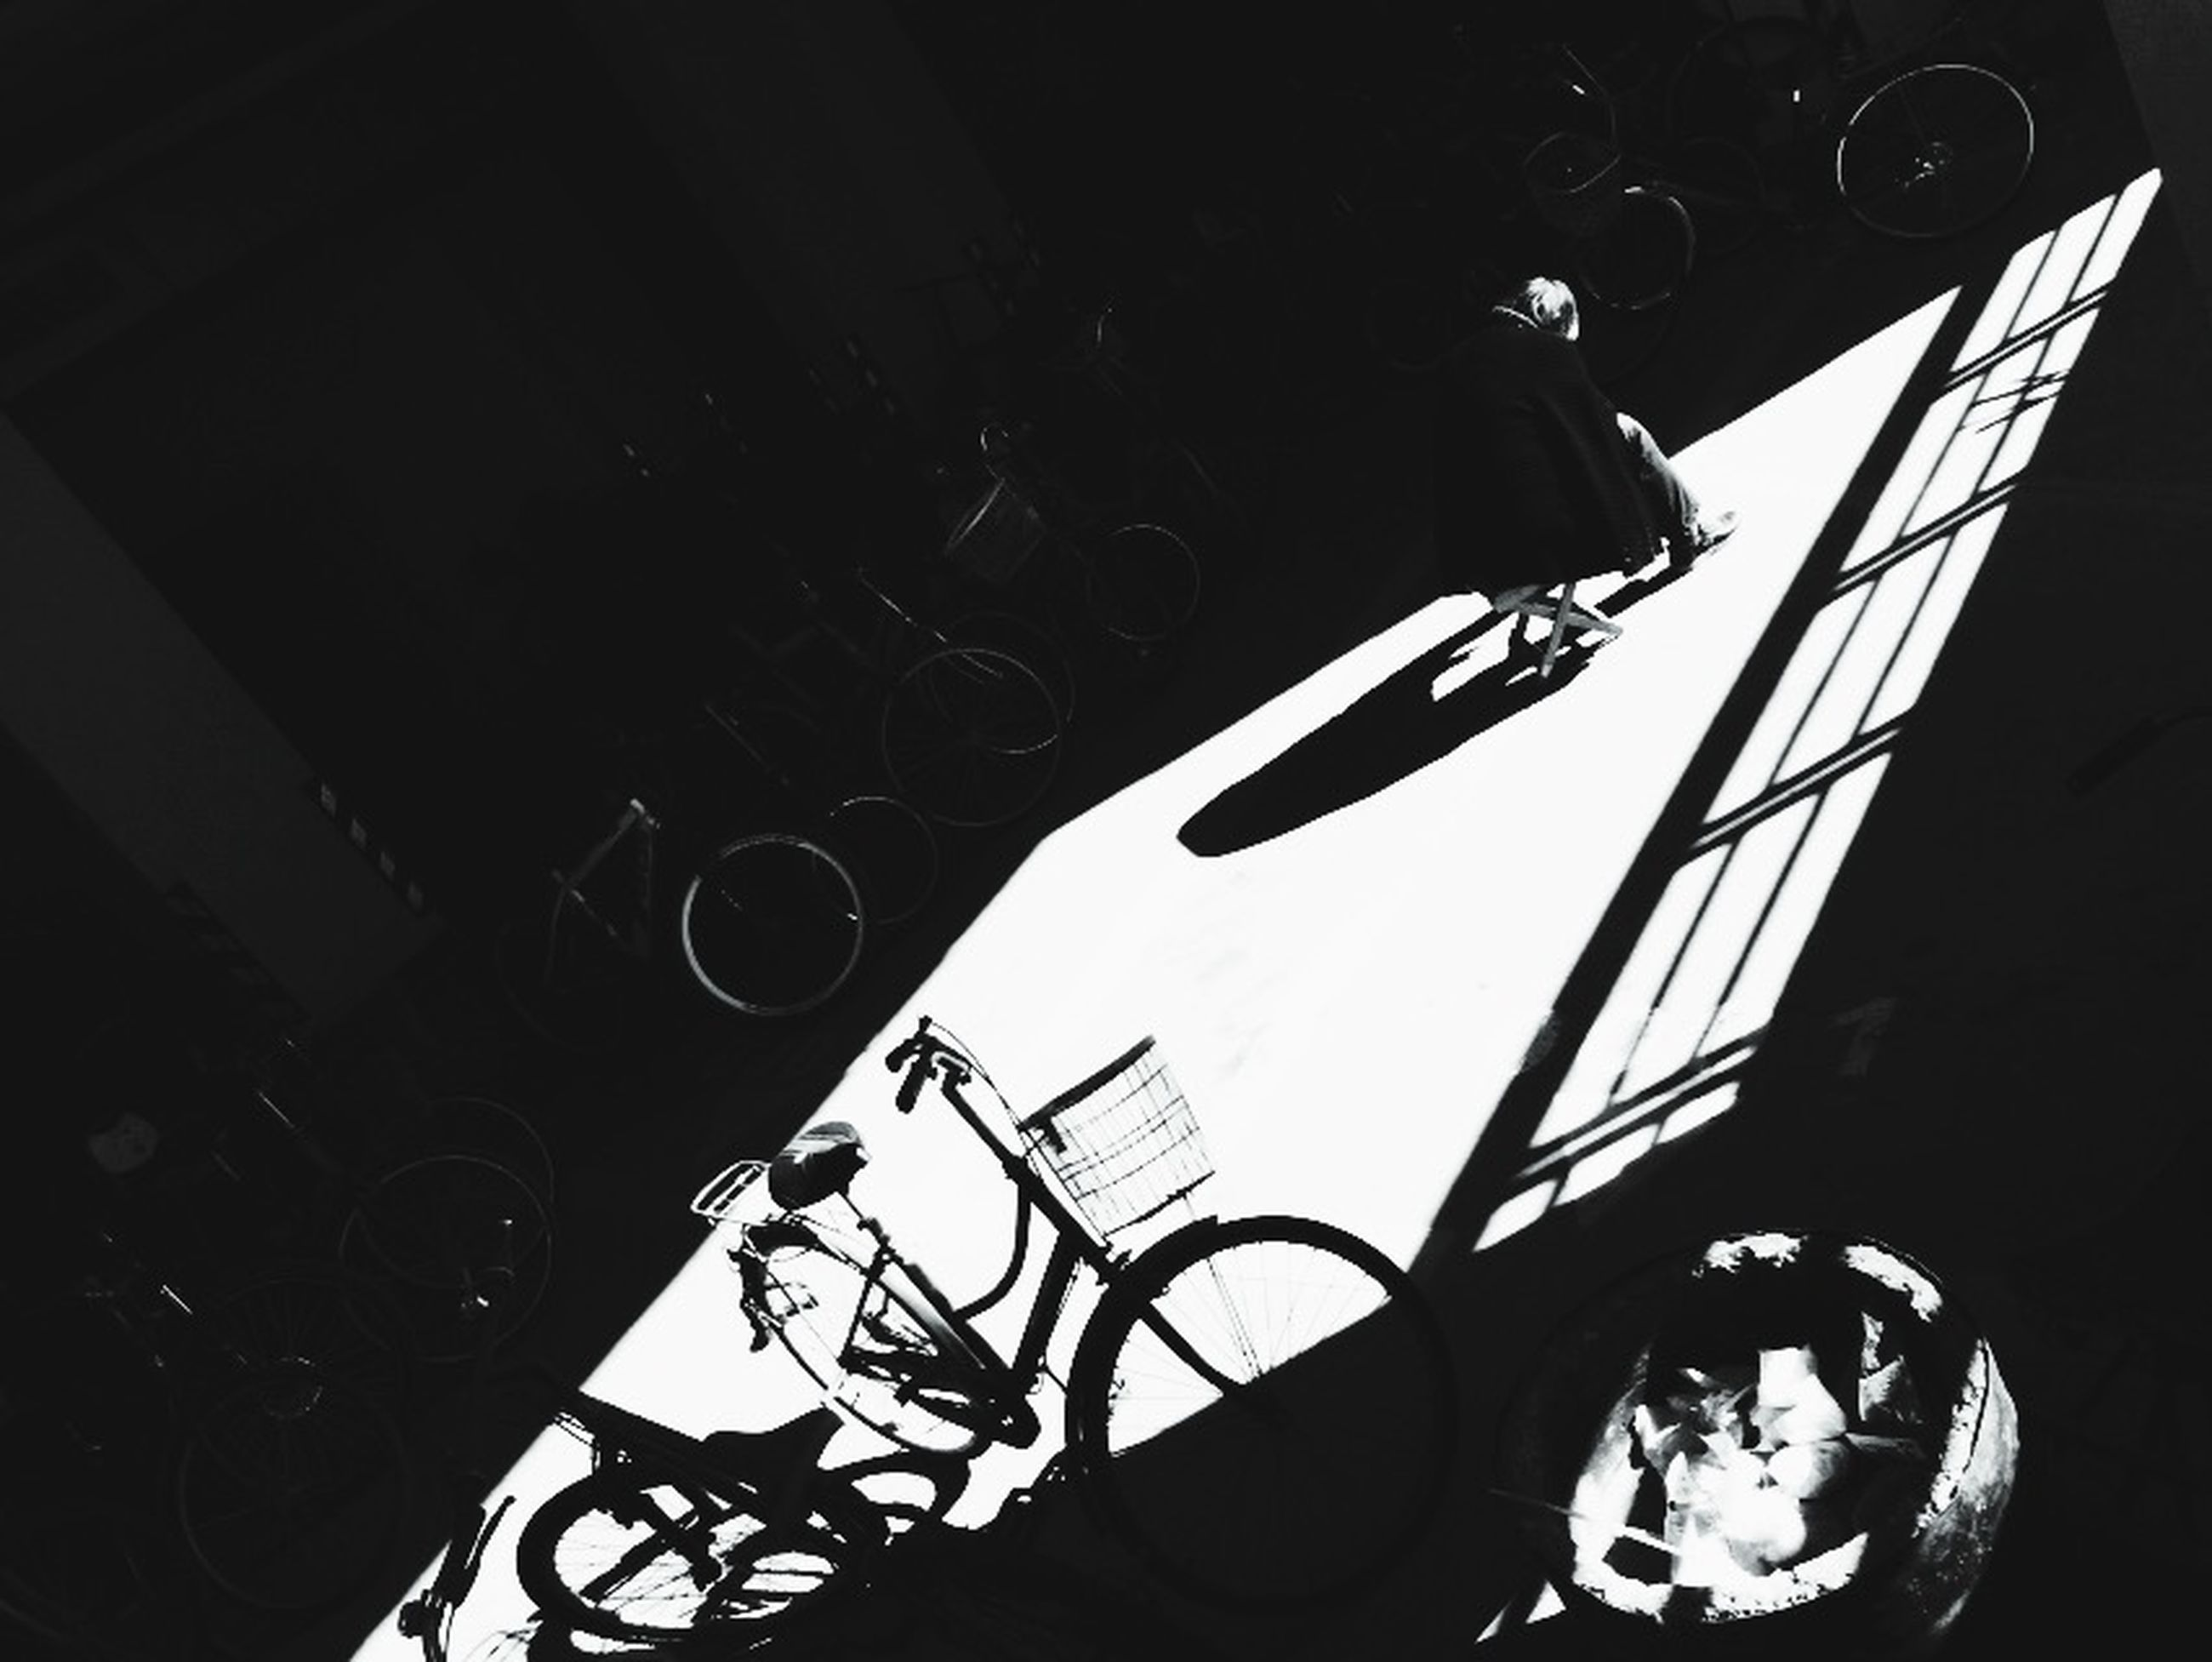 bicycle, low angle view, built structure, land vehicle, transportation, indoors, architecture, lighting equipment, shadow, sunlight, mode of transport, high angle view, illuminated, no people, night, parking, technology, building exterior, stationary